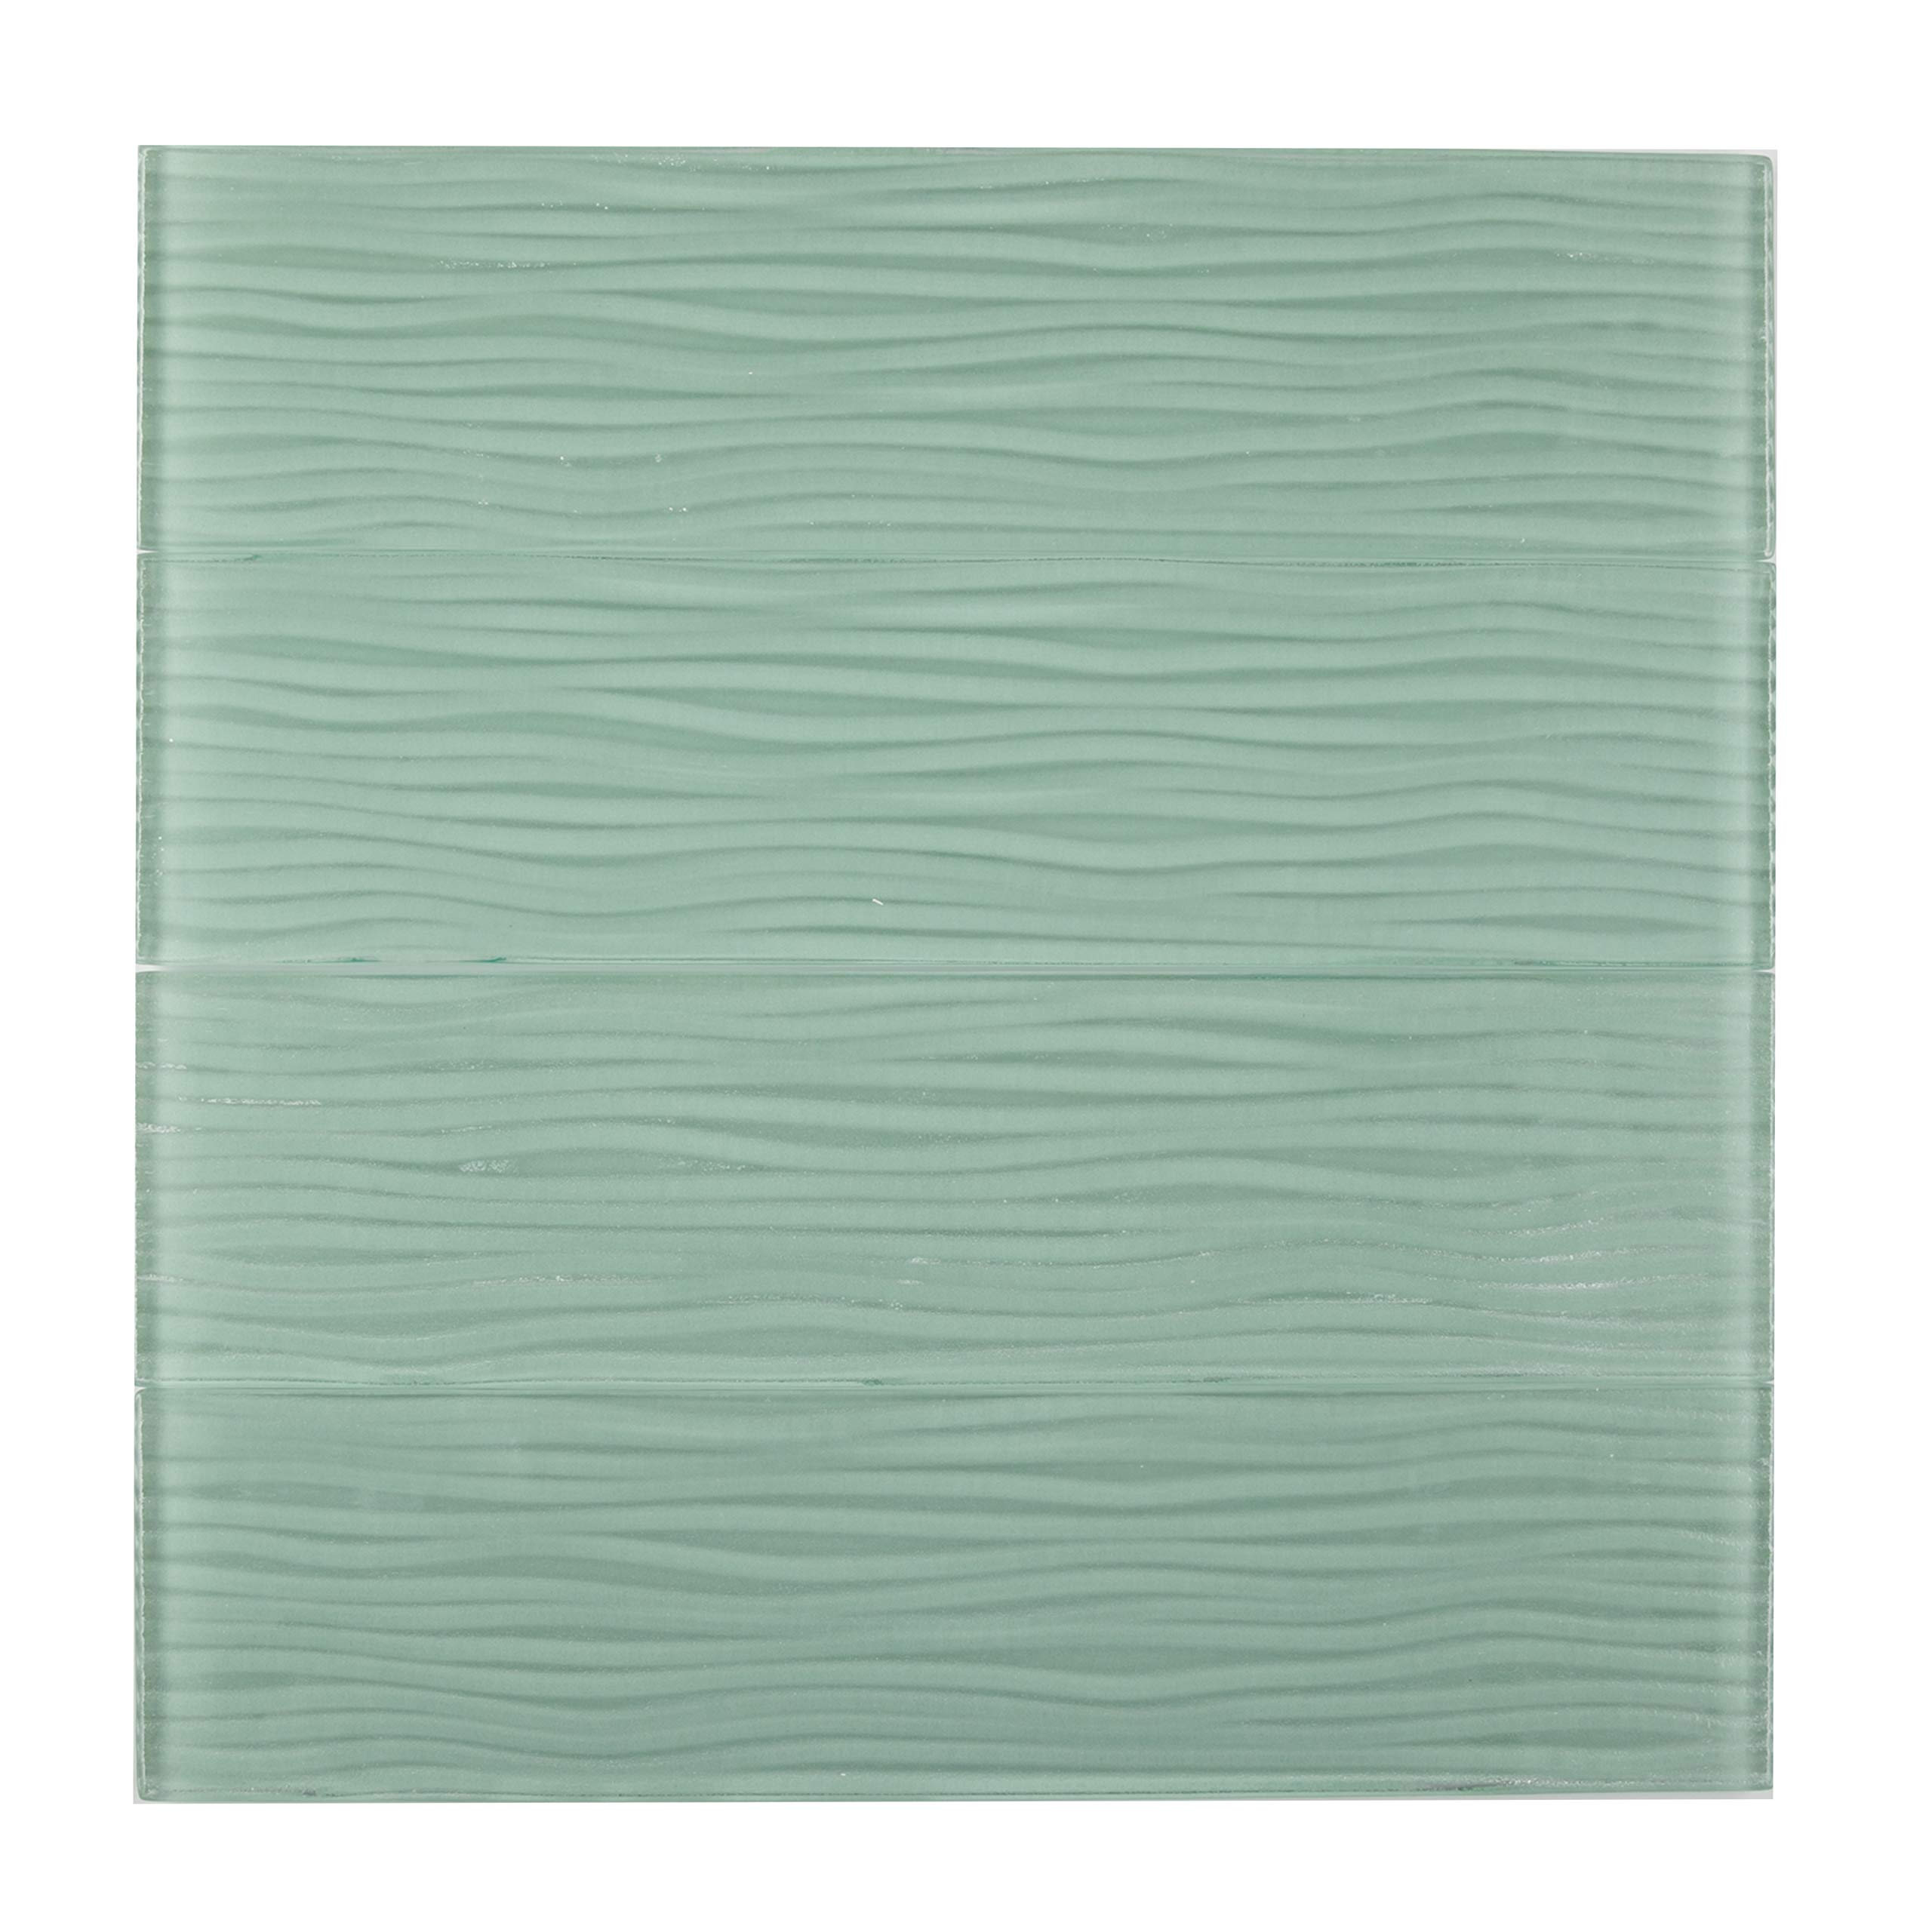 Glass Subway Tile,''Tide Collection'', CA416OS - Light Green, Wave Surface, 4''X15-3/4'', 0.438 SQFT per Piece (Box of 18 Pieces)